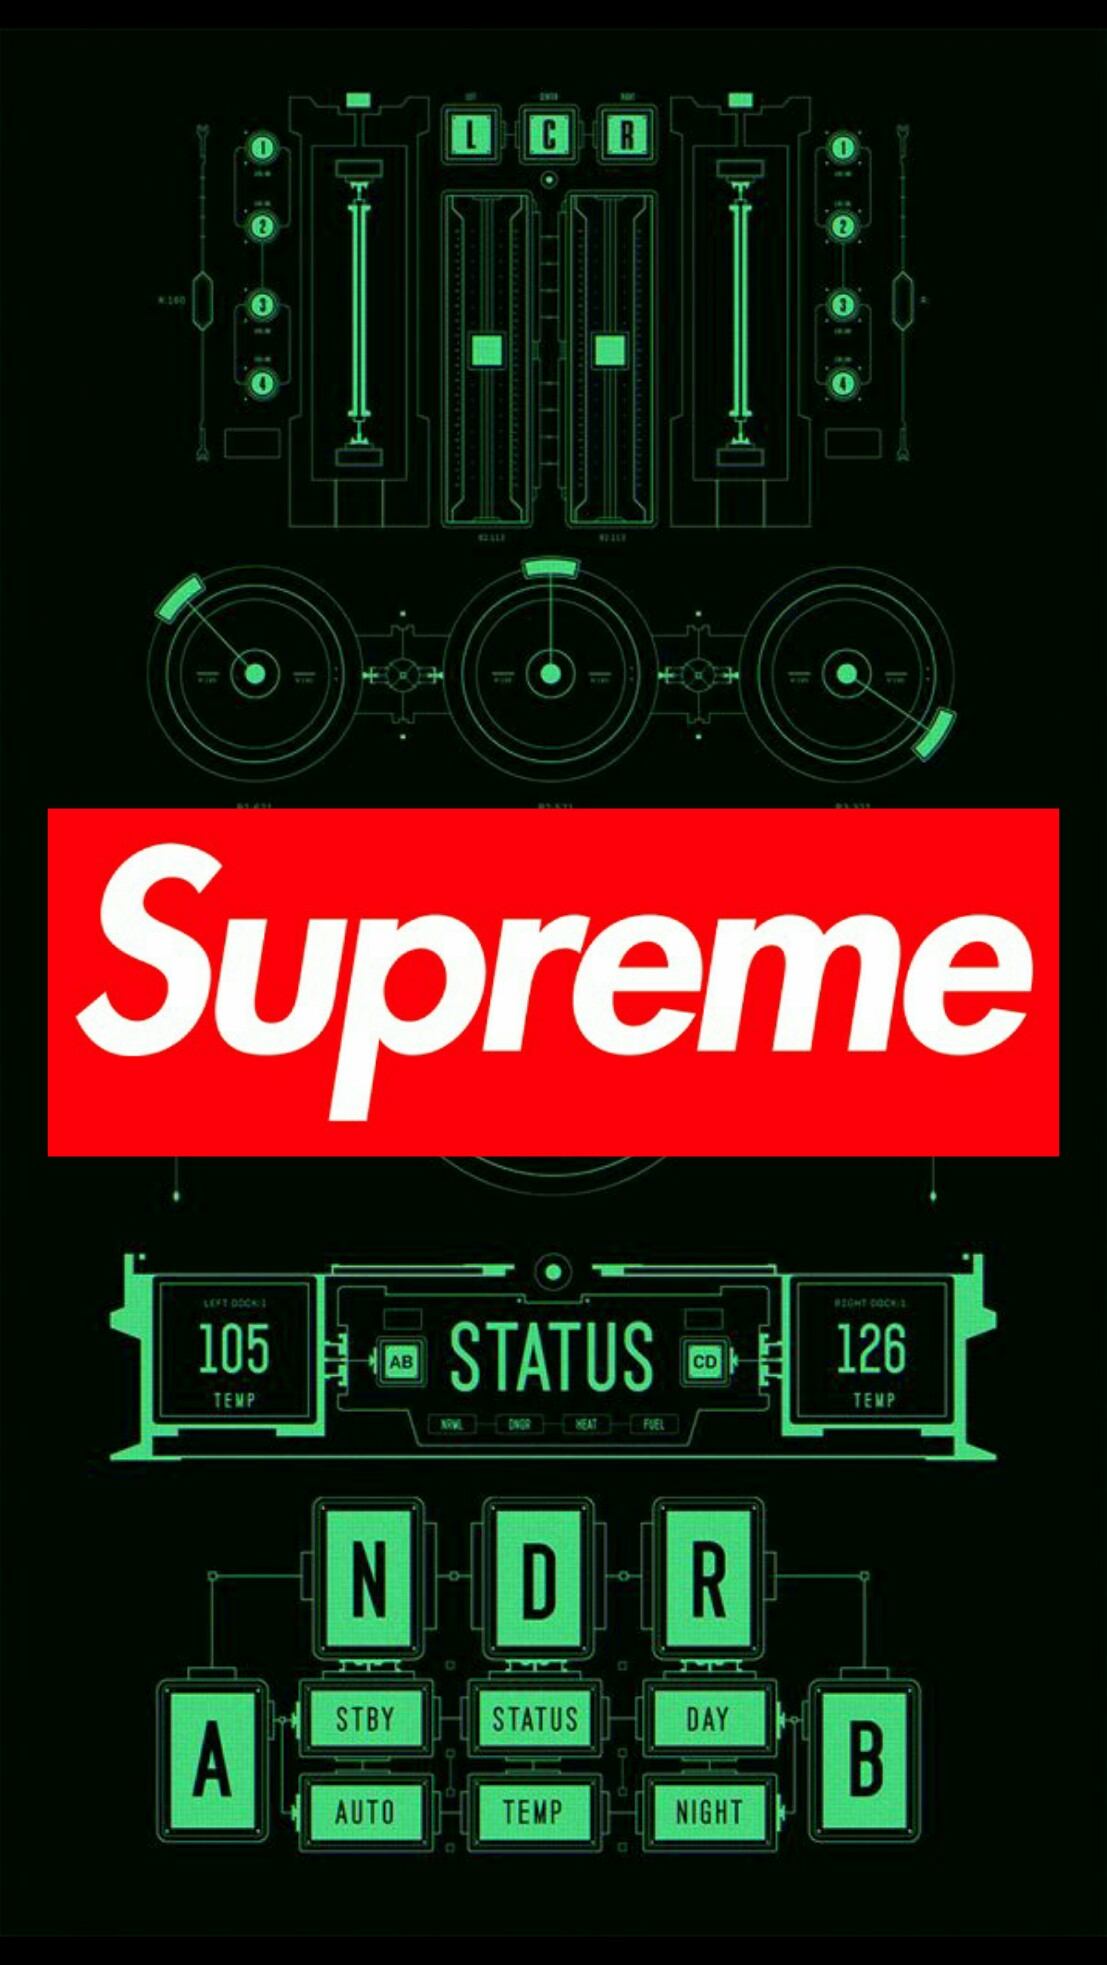 Supreme Wallpaper For Android Is Cool Wallpapers - Supreme Wallpaper Iphone Hd - HD Wallpaper